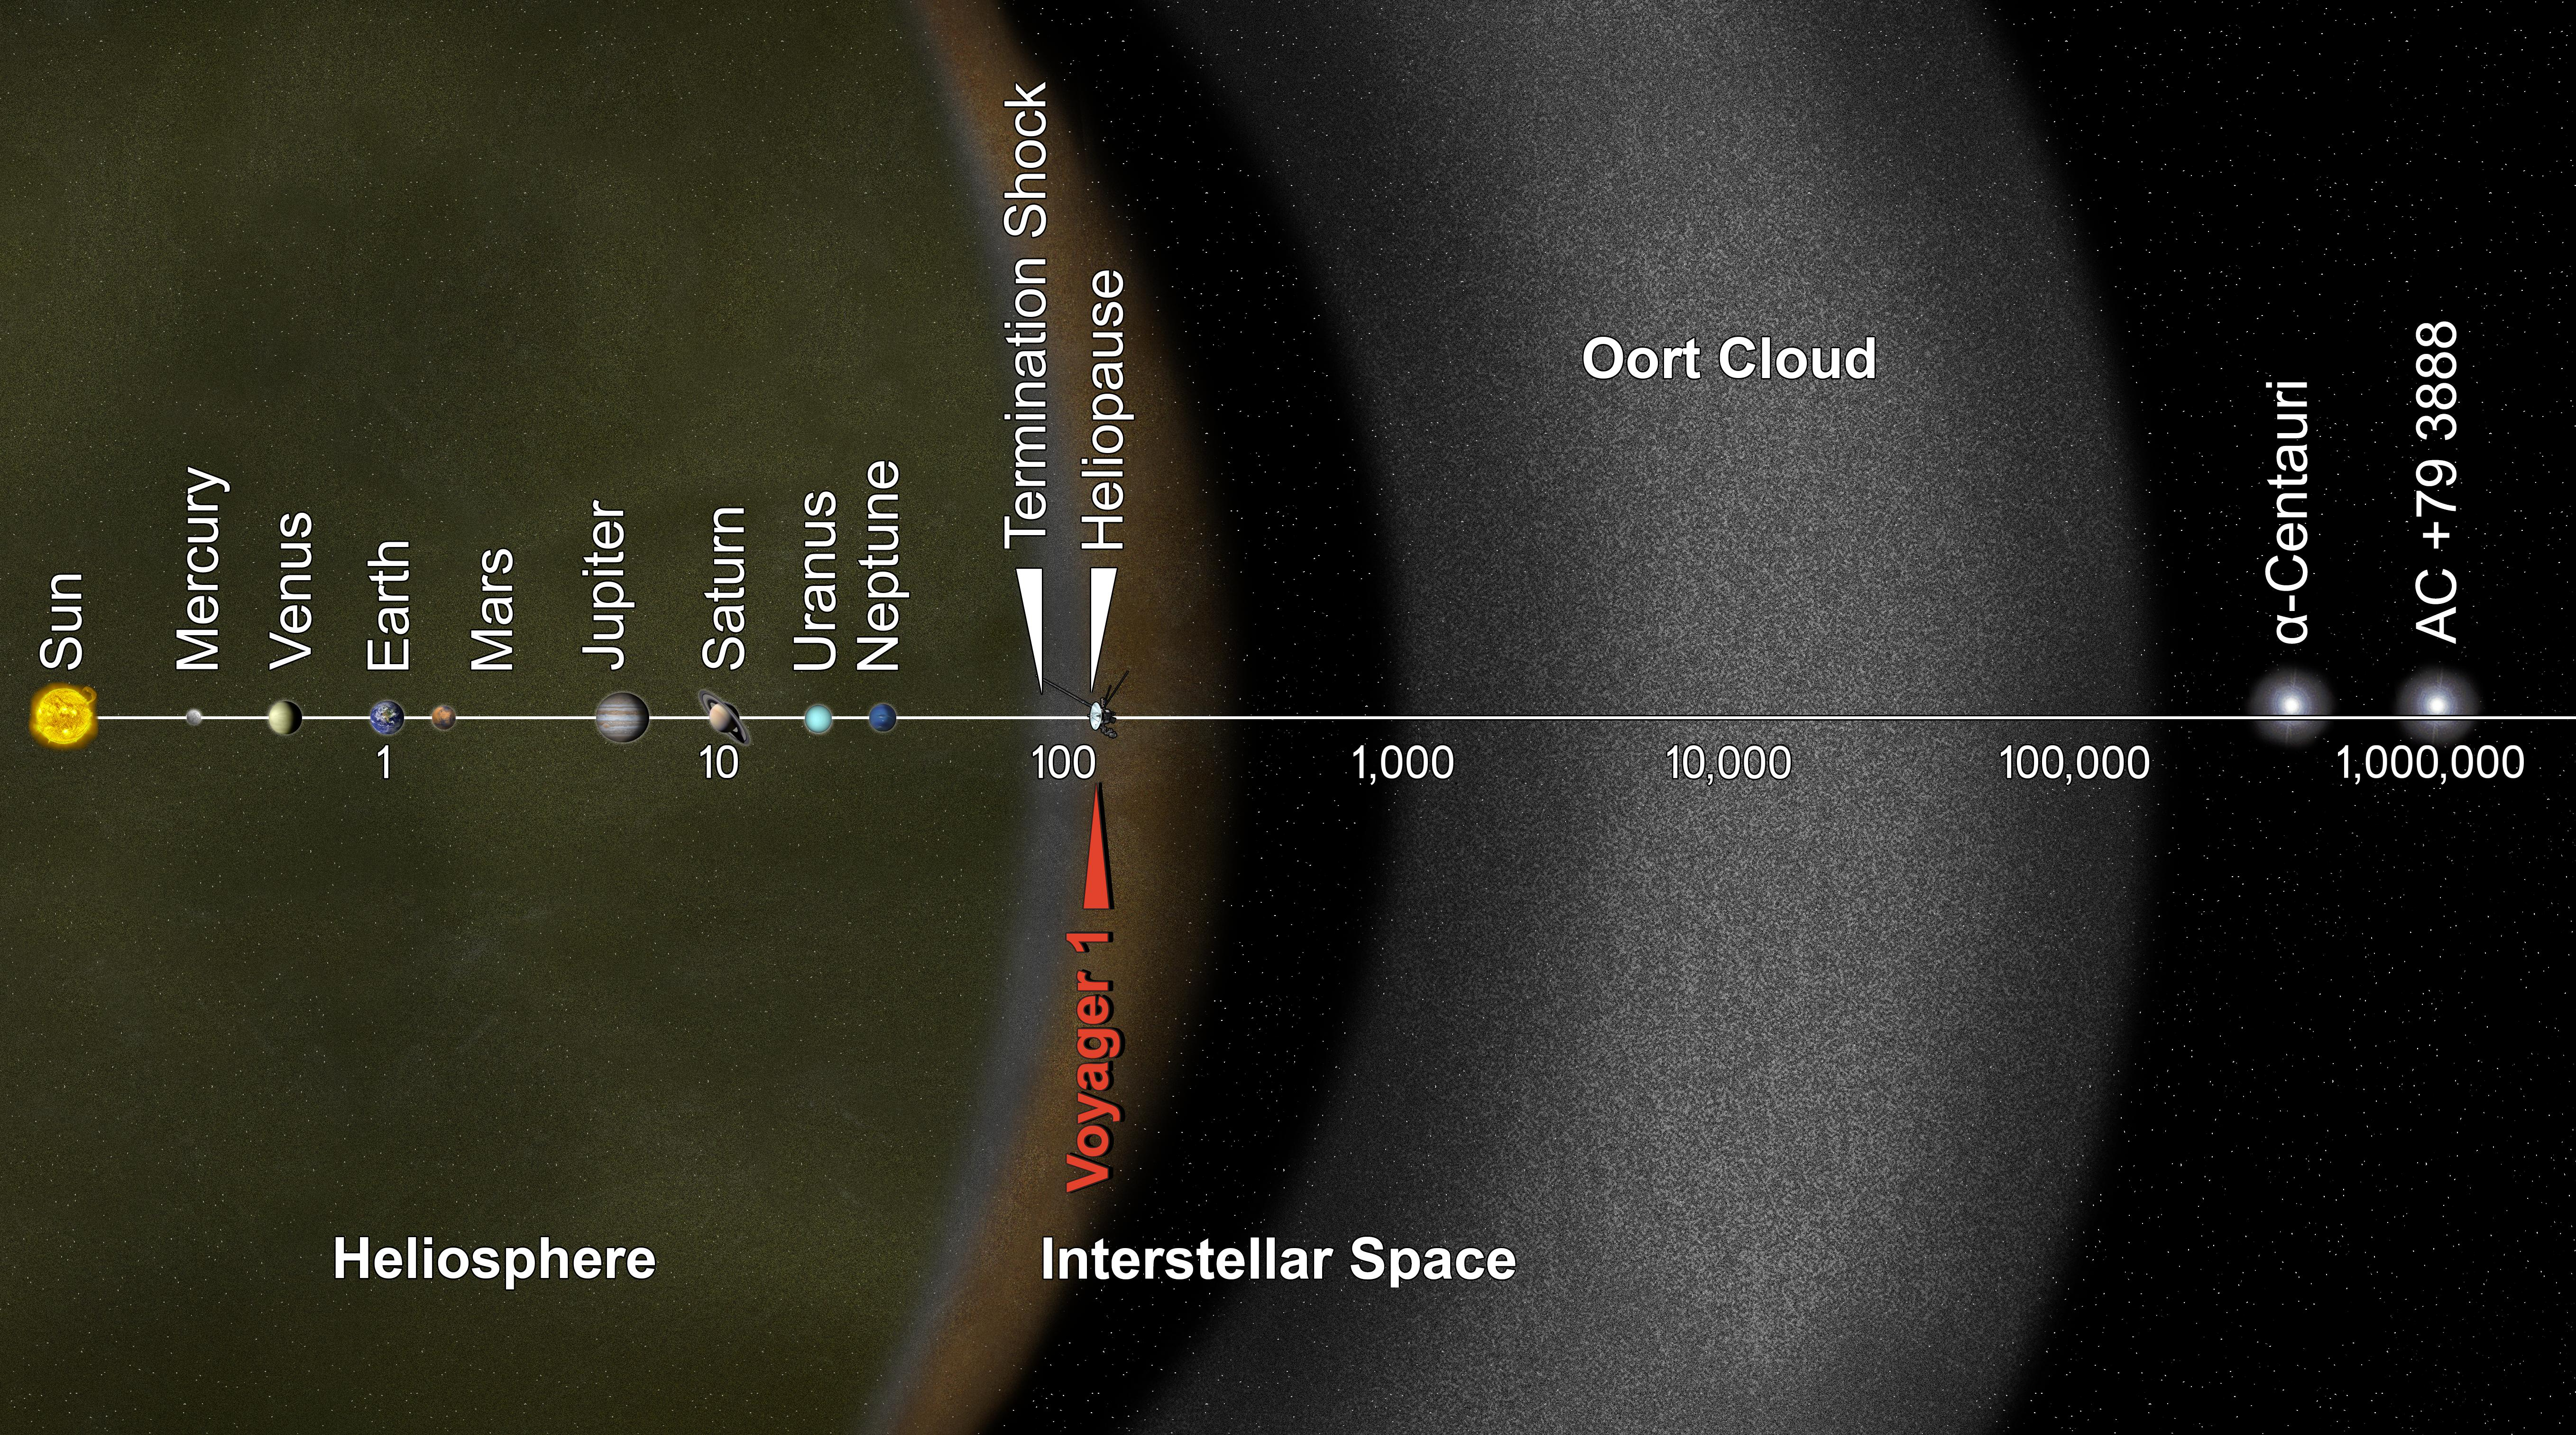 voyager-1-interstellar